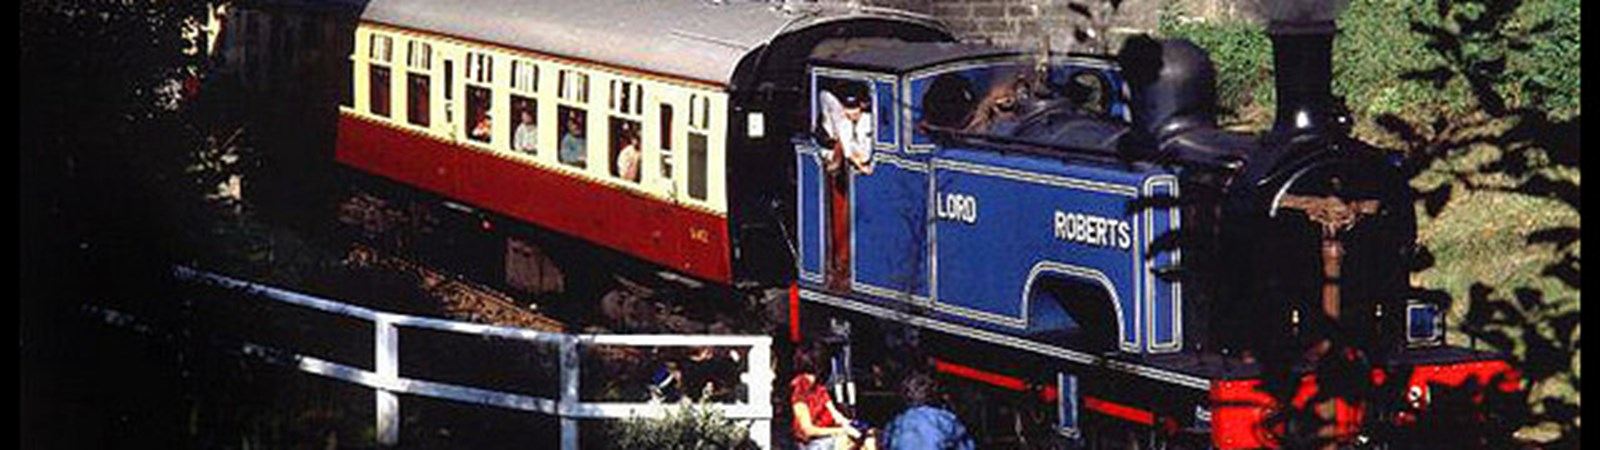 Bo'ness & Kinneil Railway, Bo'ness|events in falkirk